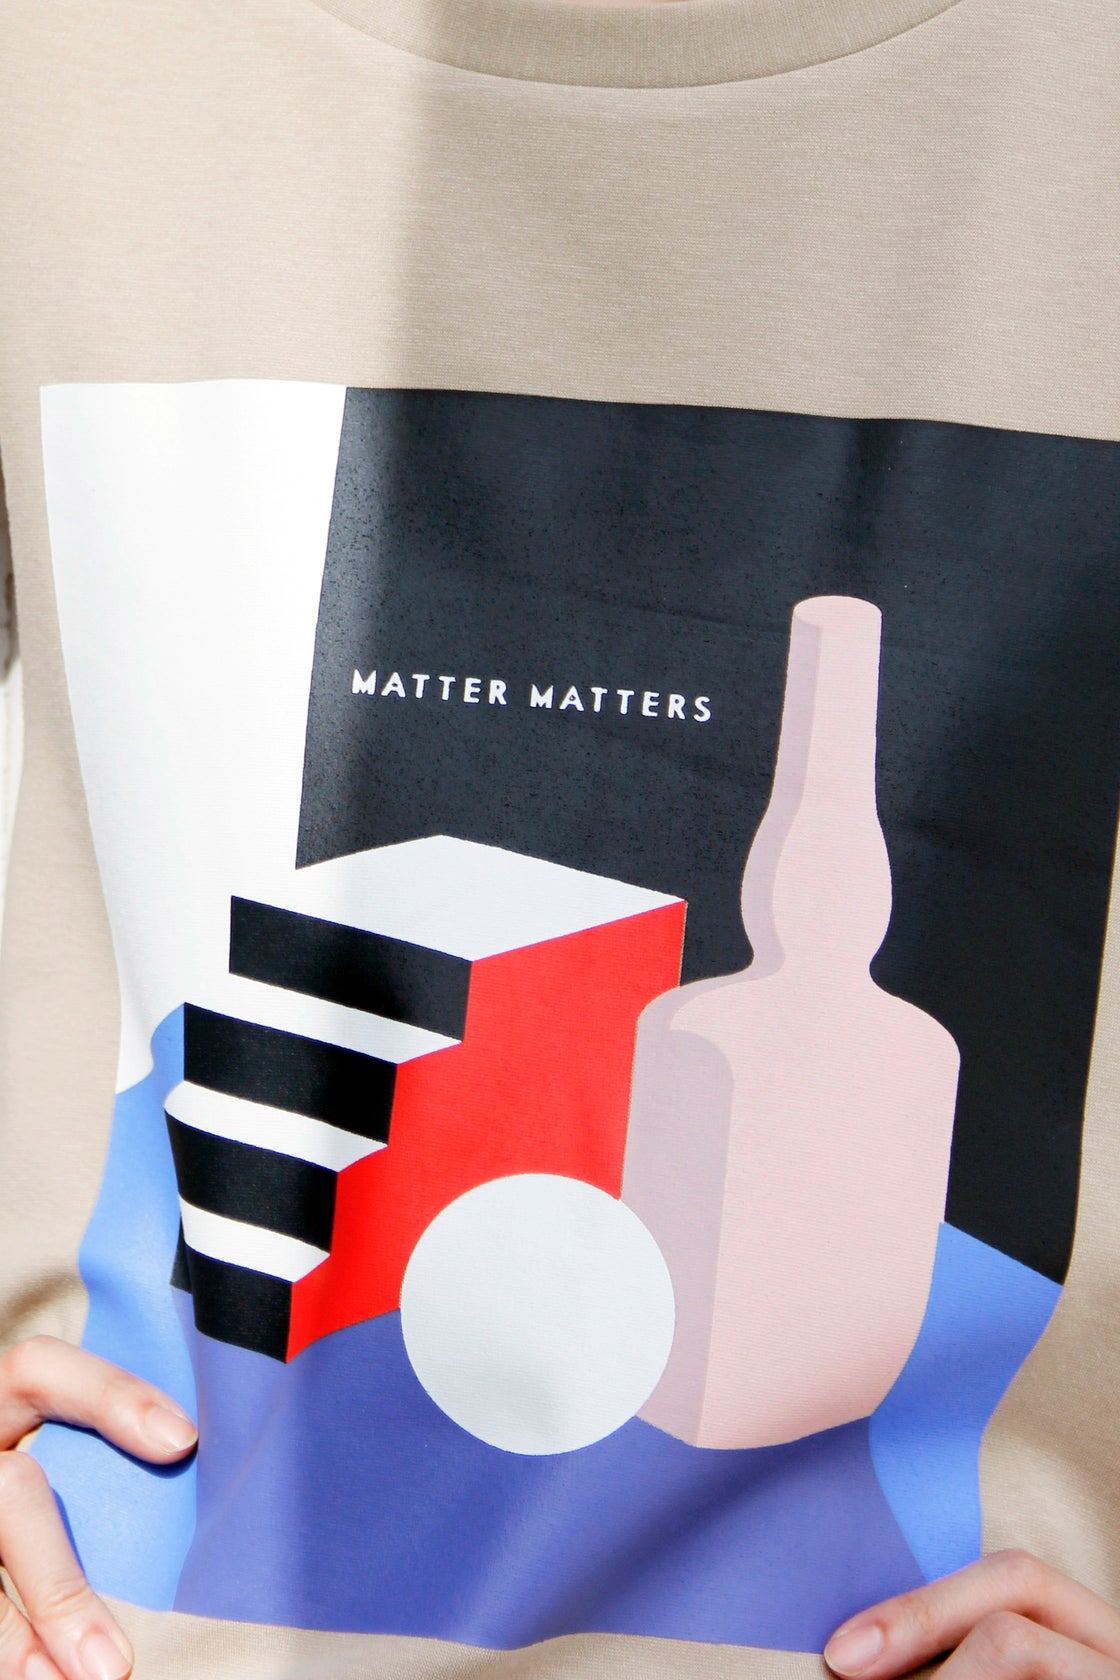 Image of Matter Matters Unisex Graphic Huge T-Shirt - Tan